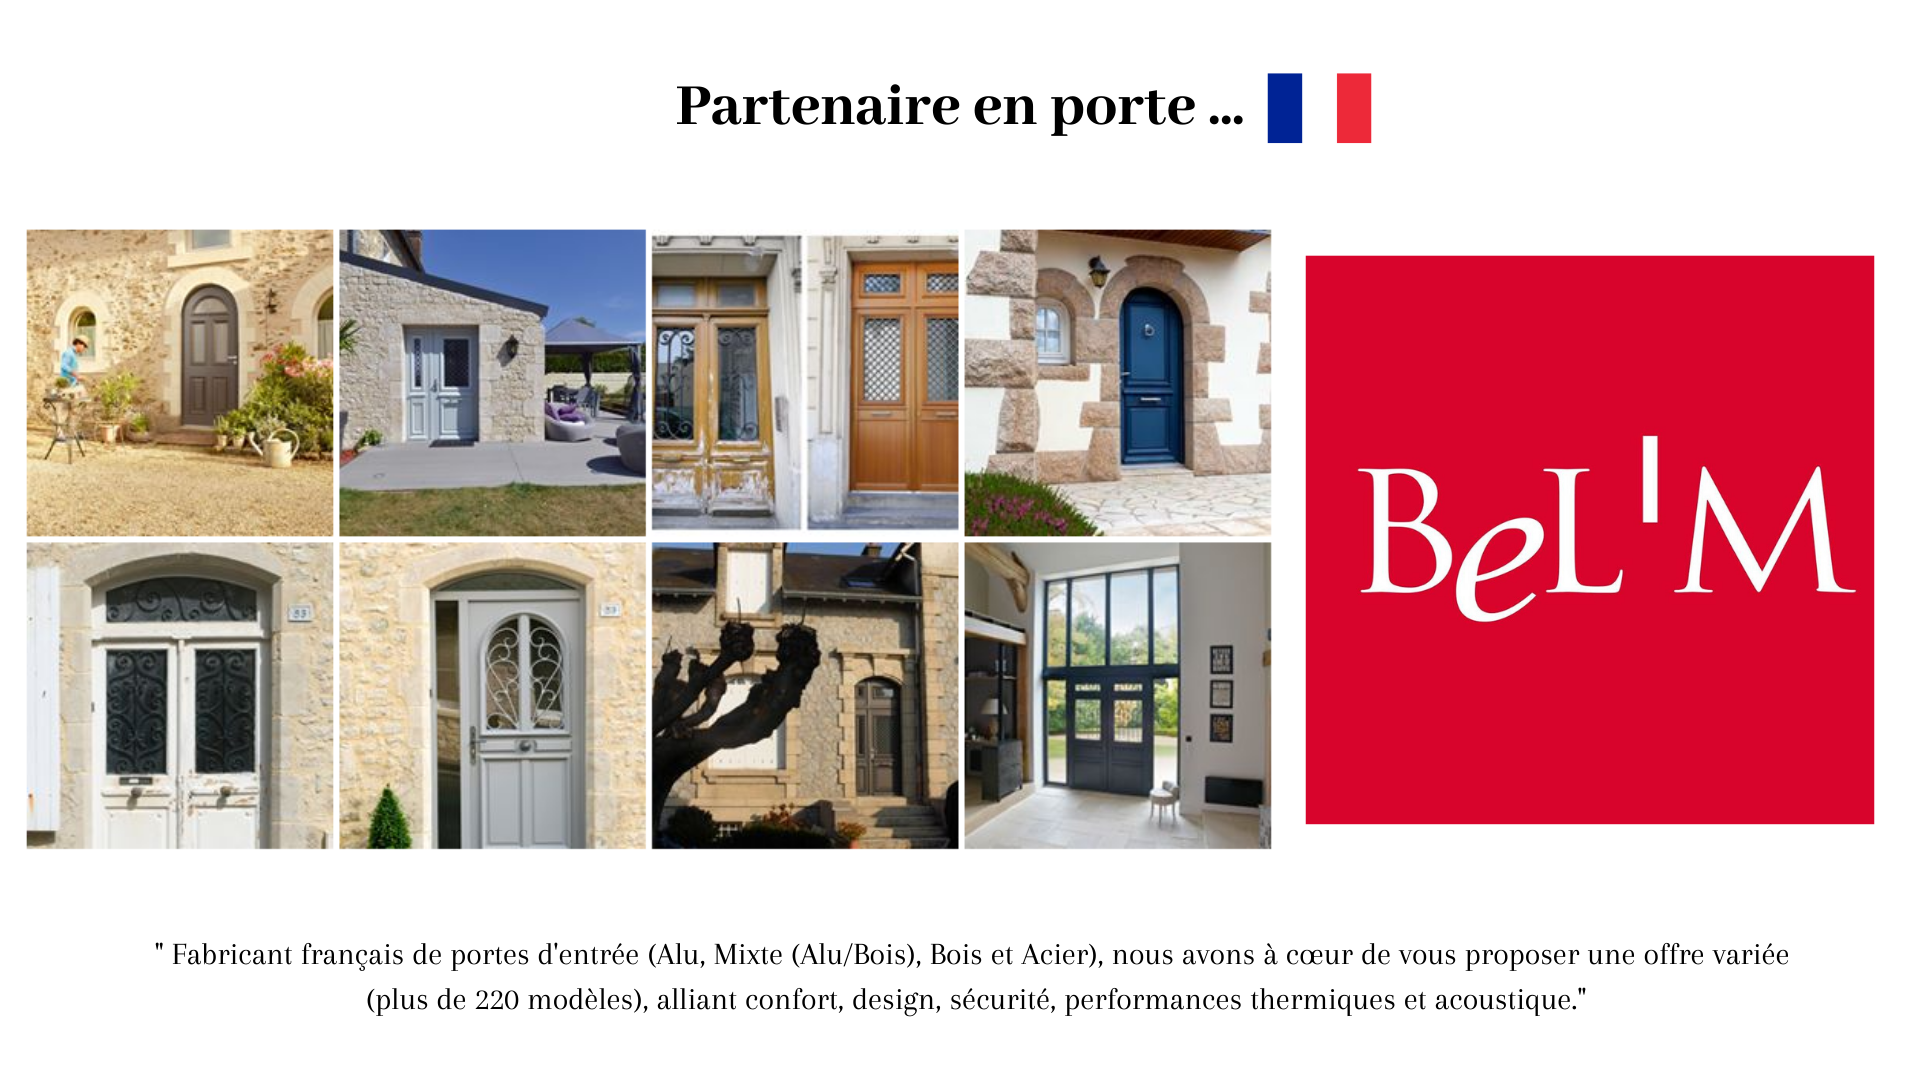 Partenaire porte, made in France